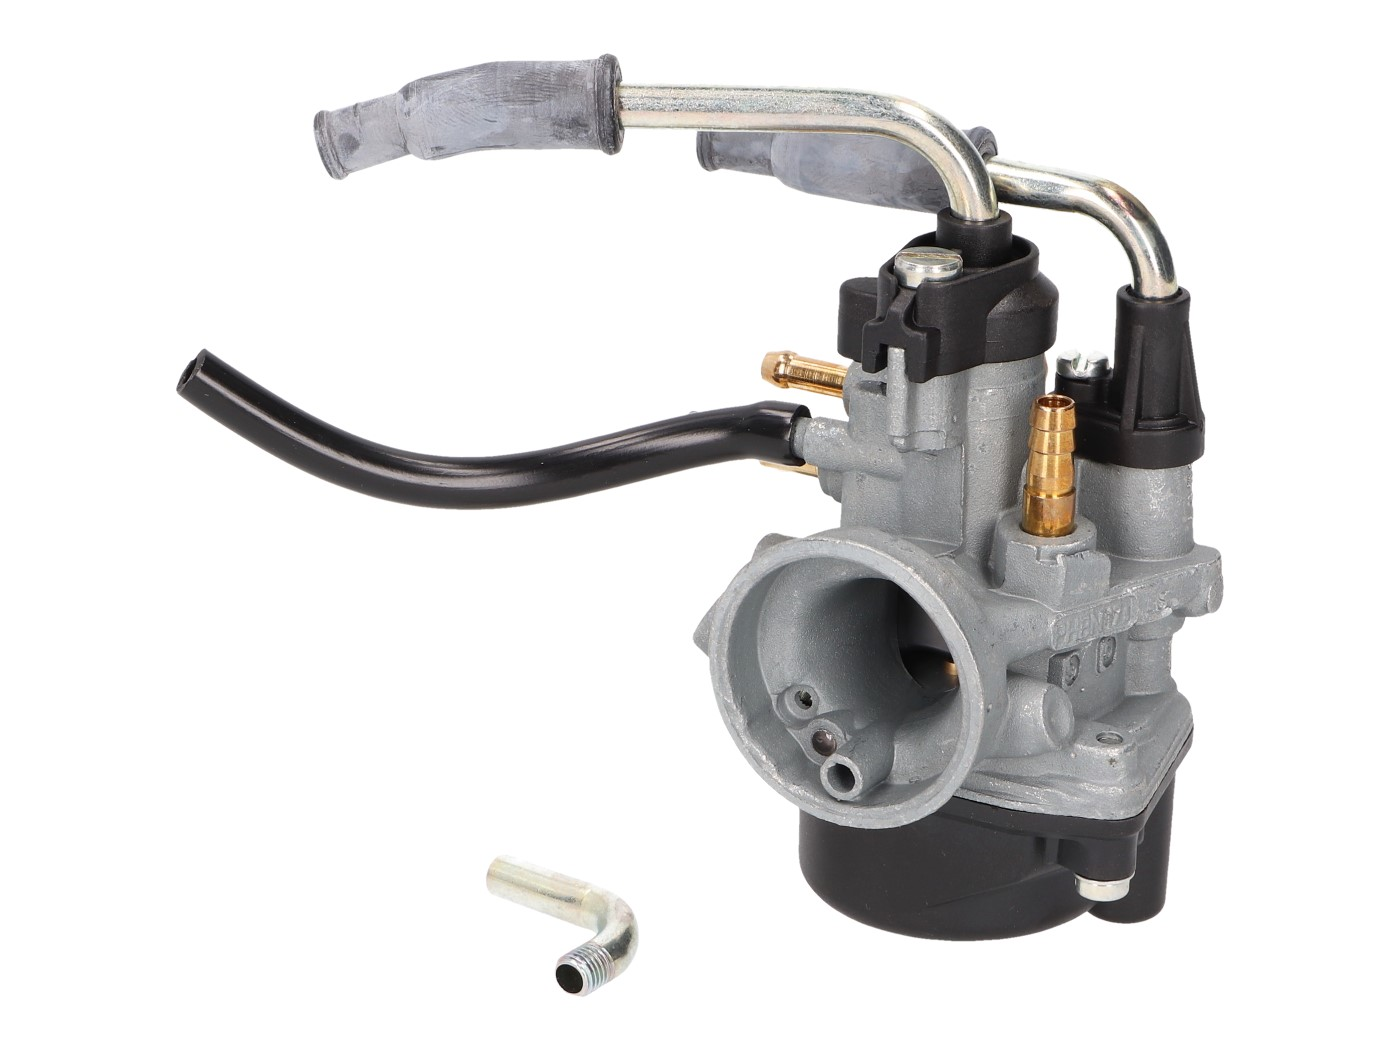 Vehicle Parts & Accessories Piaggio NRG 50 Power DT AC 07-09